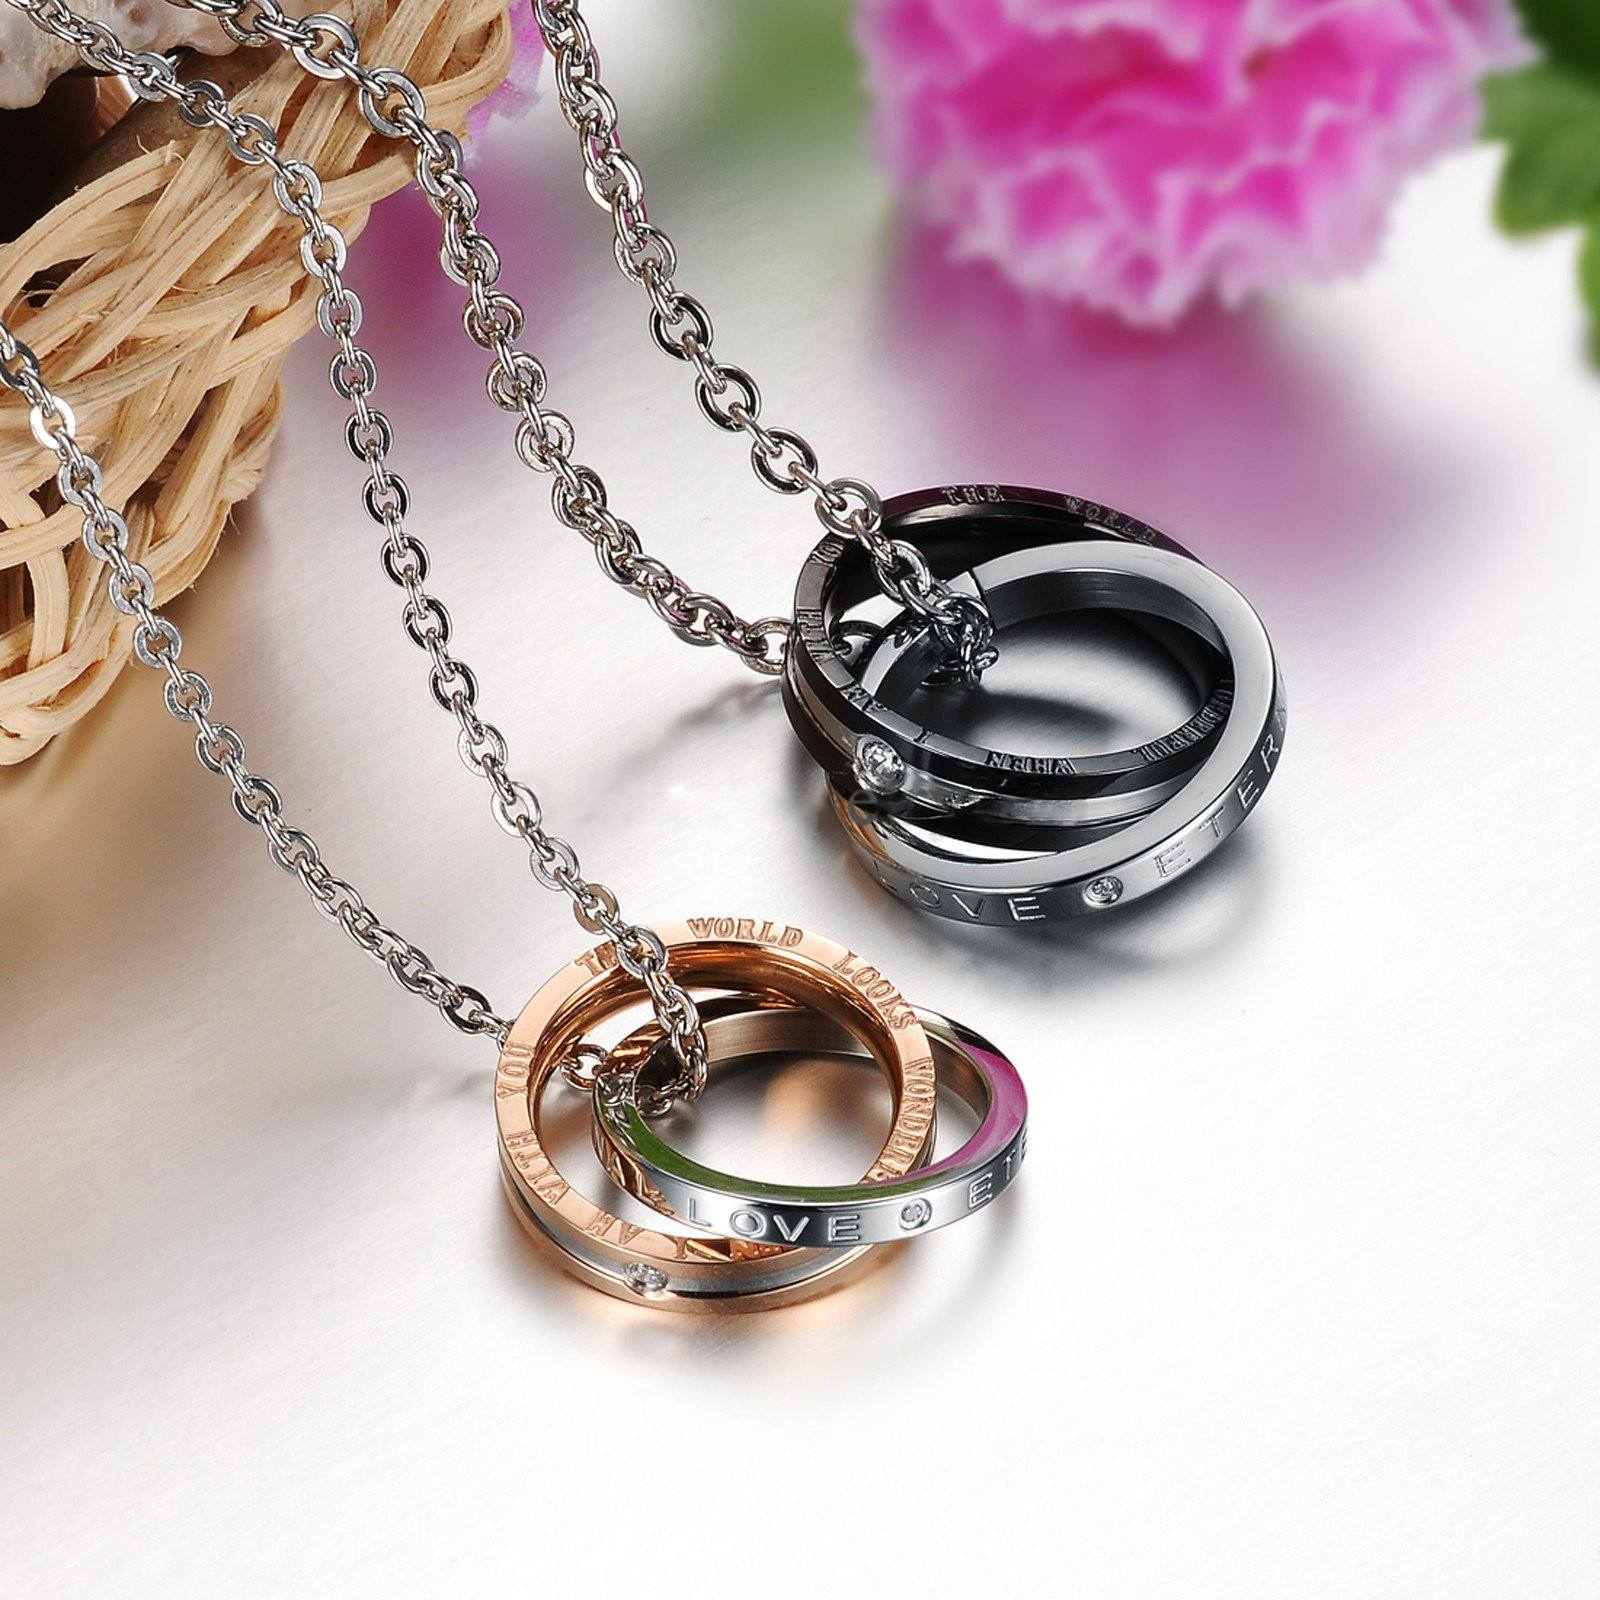 9fb42550dc ... Necklace - His And Hers: A Promise Of Eternal Love Stainless Steel  Couple's Necklace Set ...